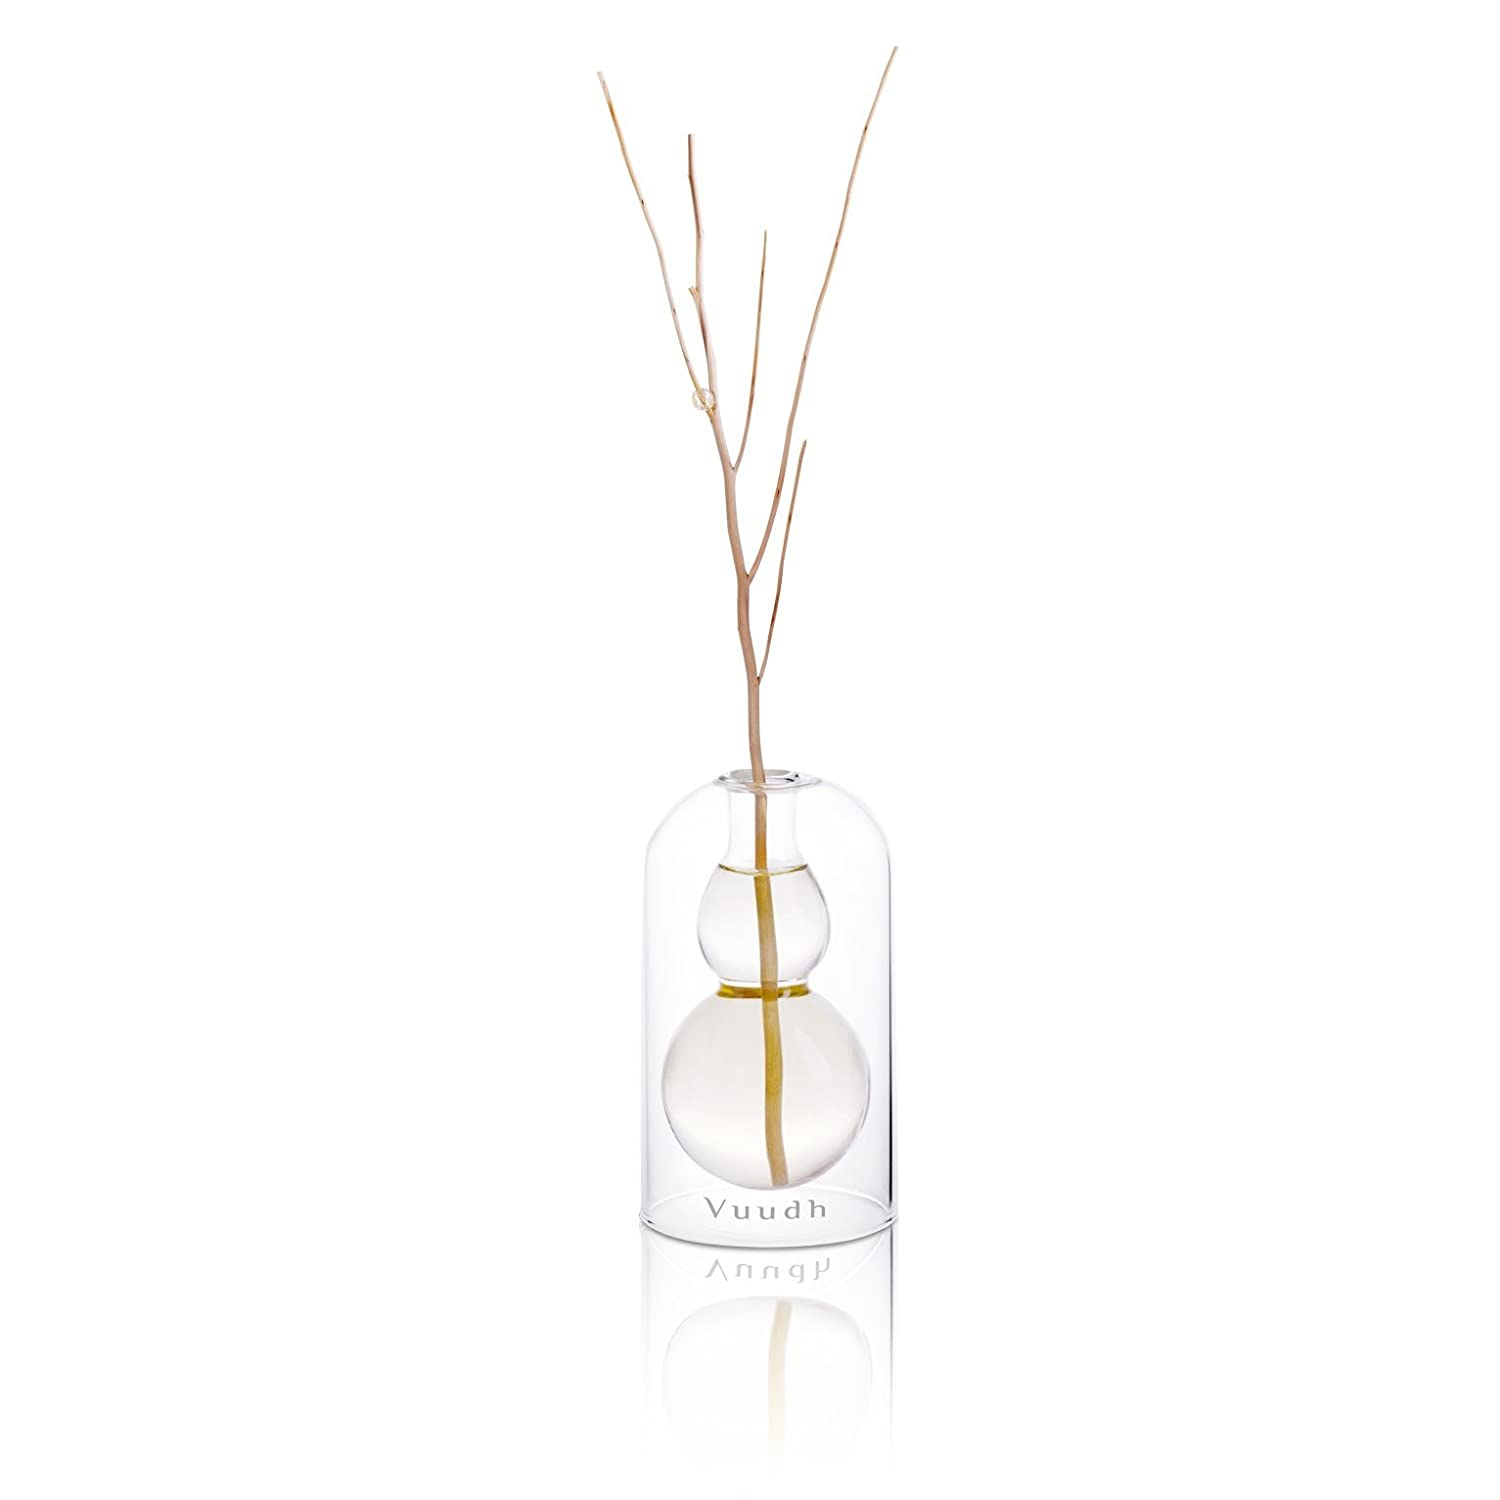 VUUDH IMMORTALITY DIFFUSER - SMALL (branches IVORY WOOD & DIFFUSER OIL not included !) HARNN Global Ltd.